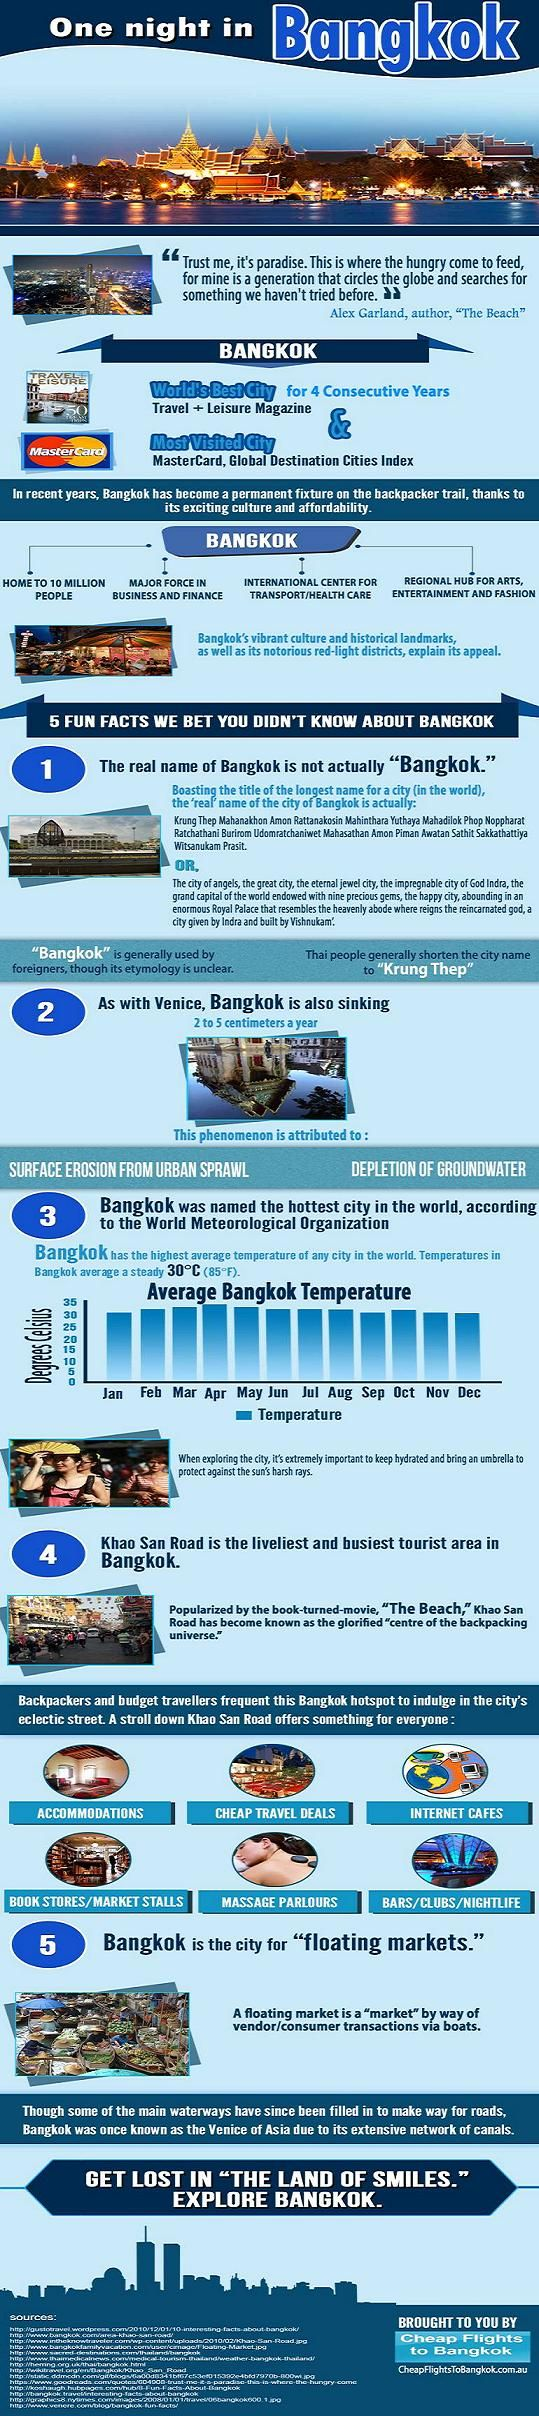 """Hottest city in the world!""One Night In Bangkok #Infographic #Bangkok #Travel"